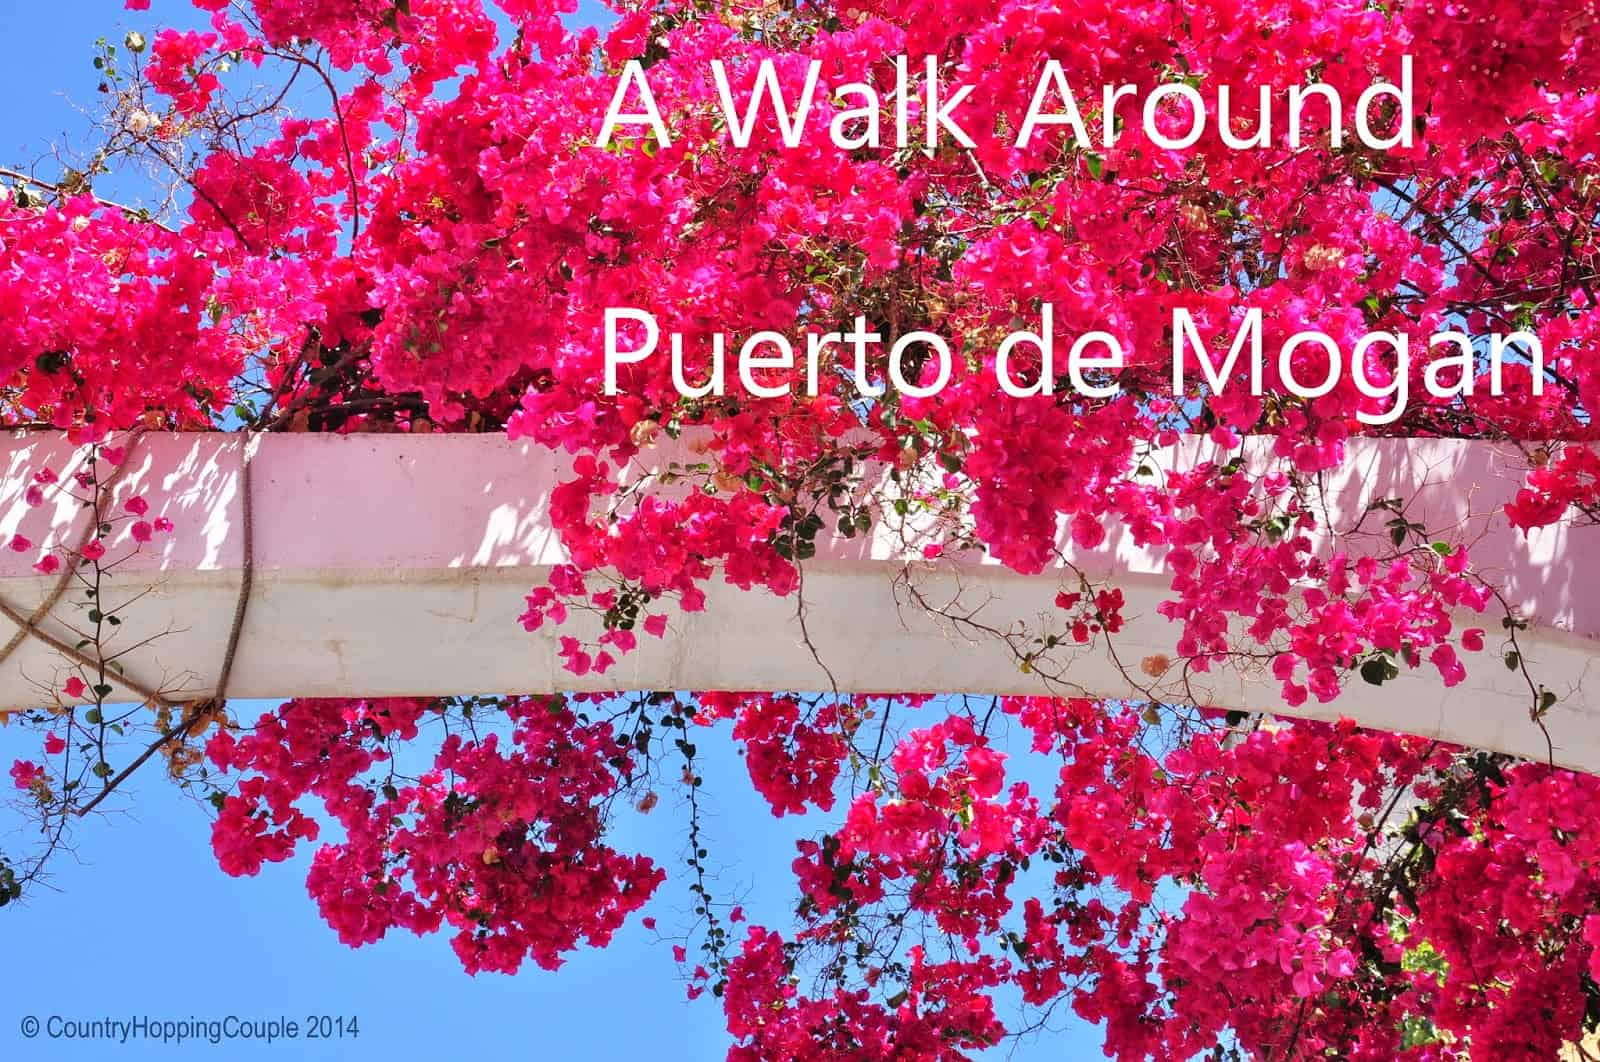 A walk around Puerto de Mogan